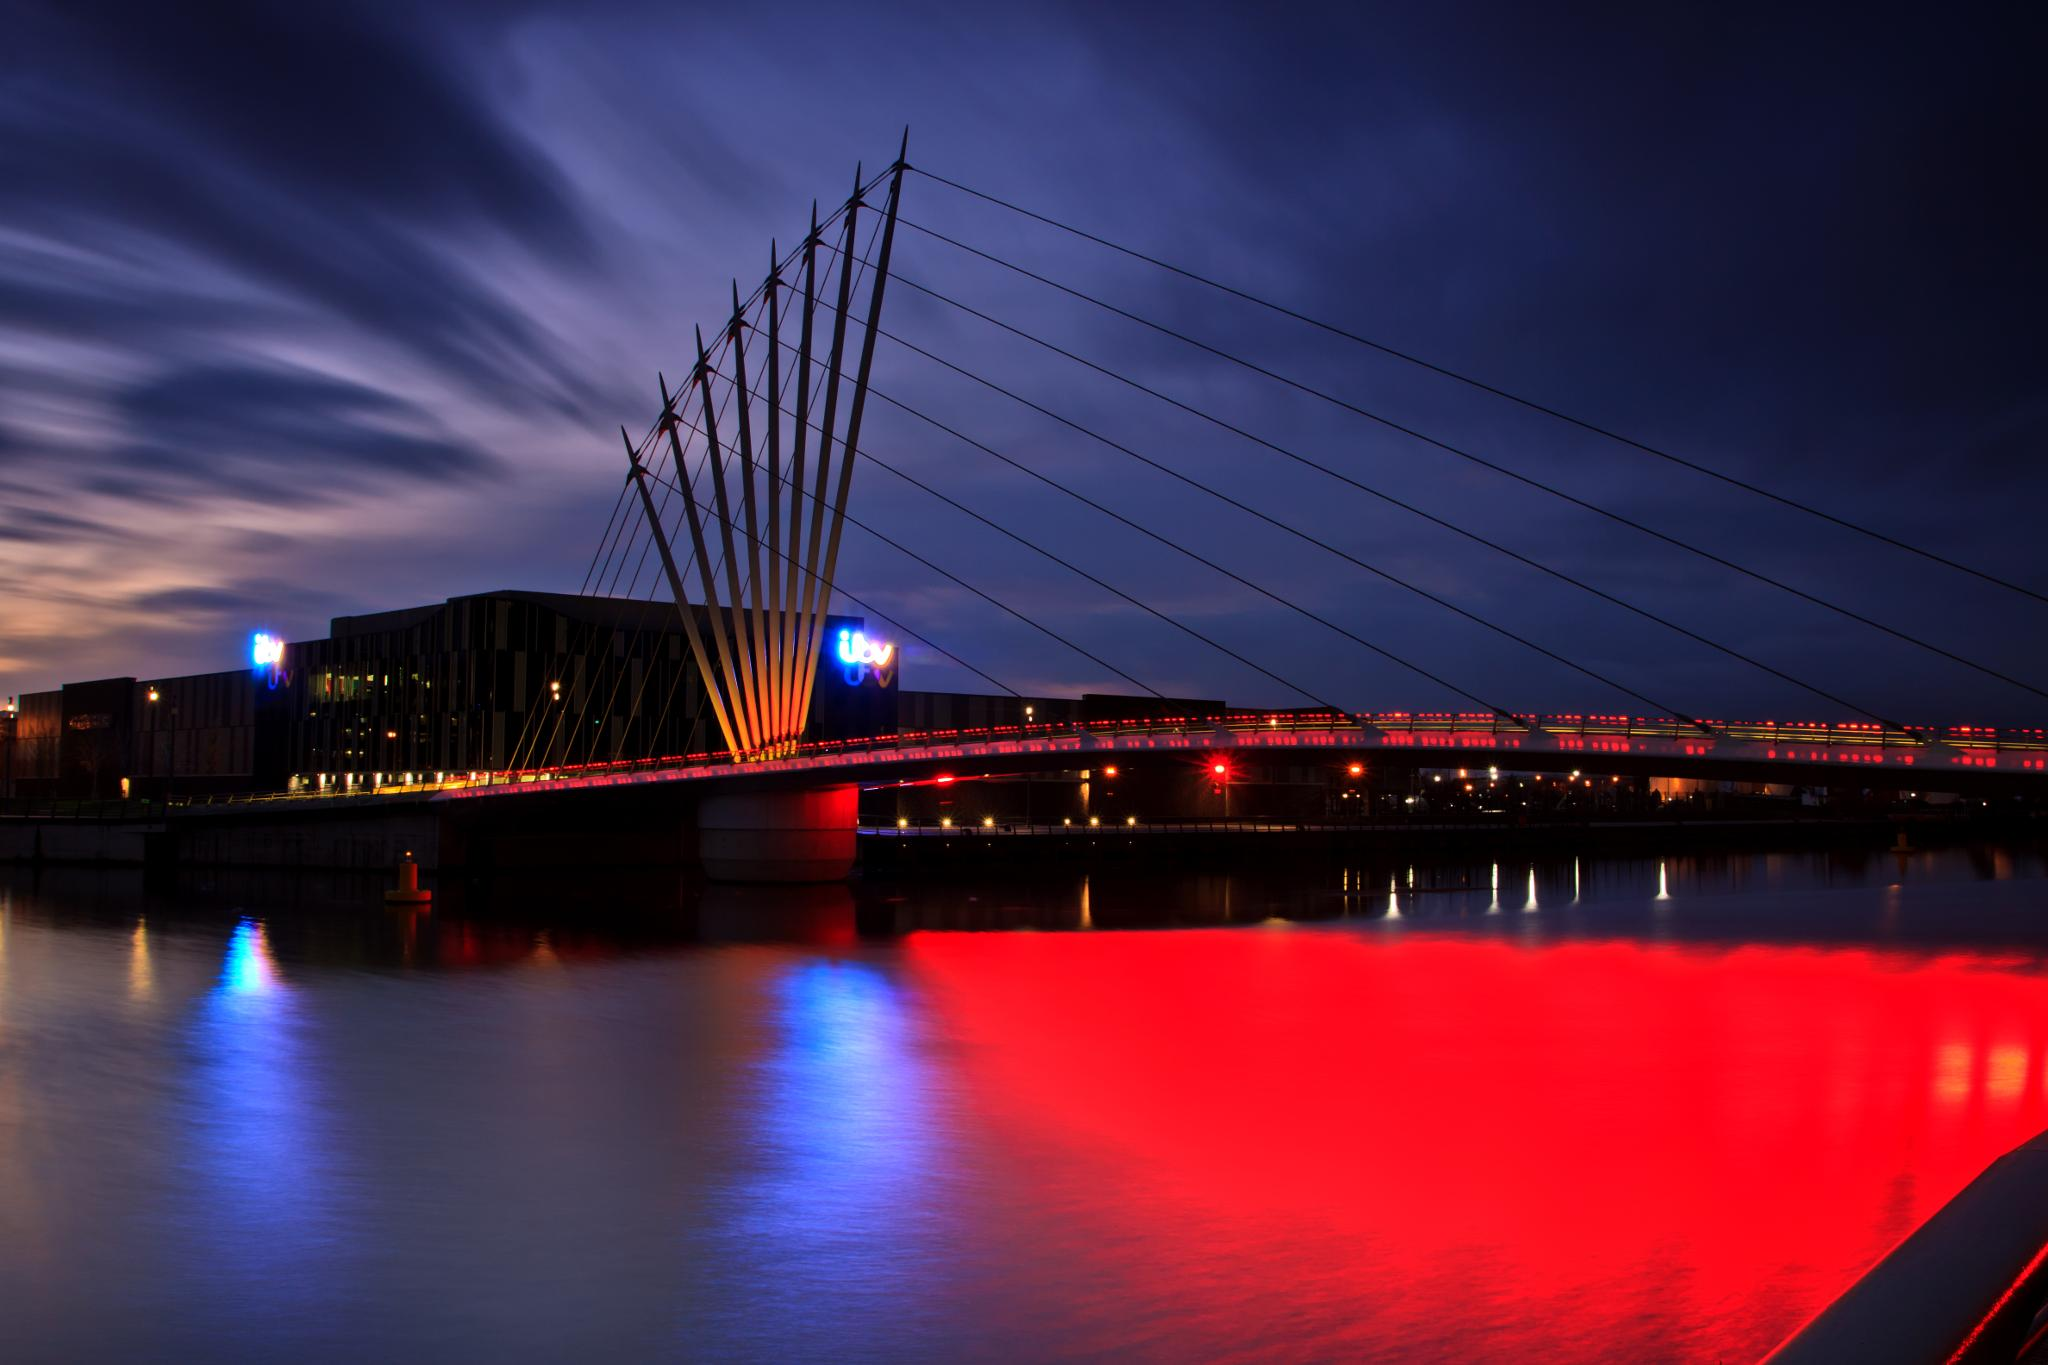 Bridge over the Ship Canel Salford by Steve Rawlings